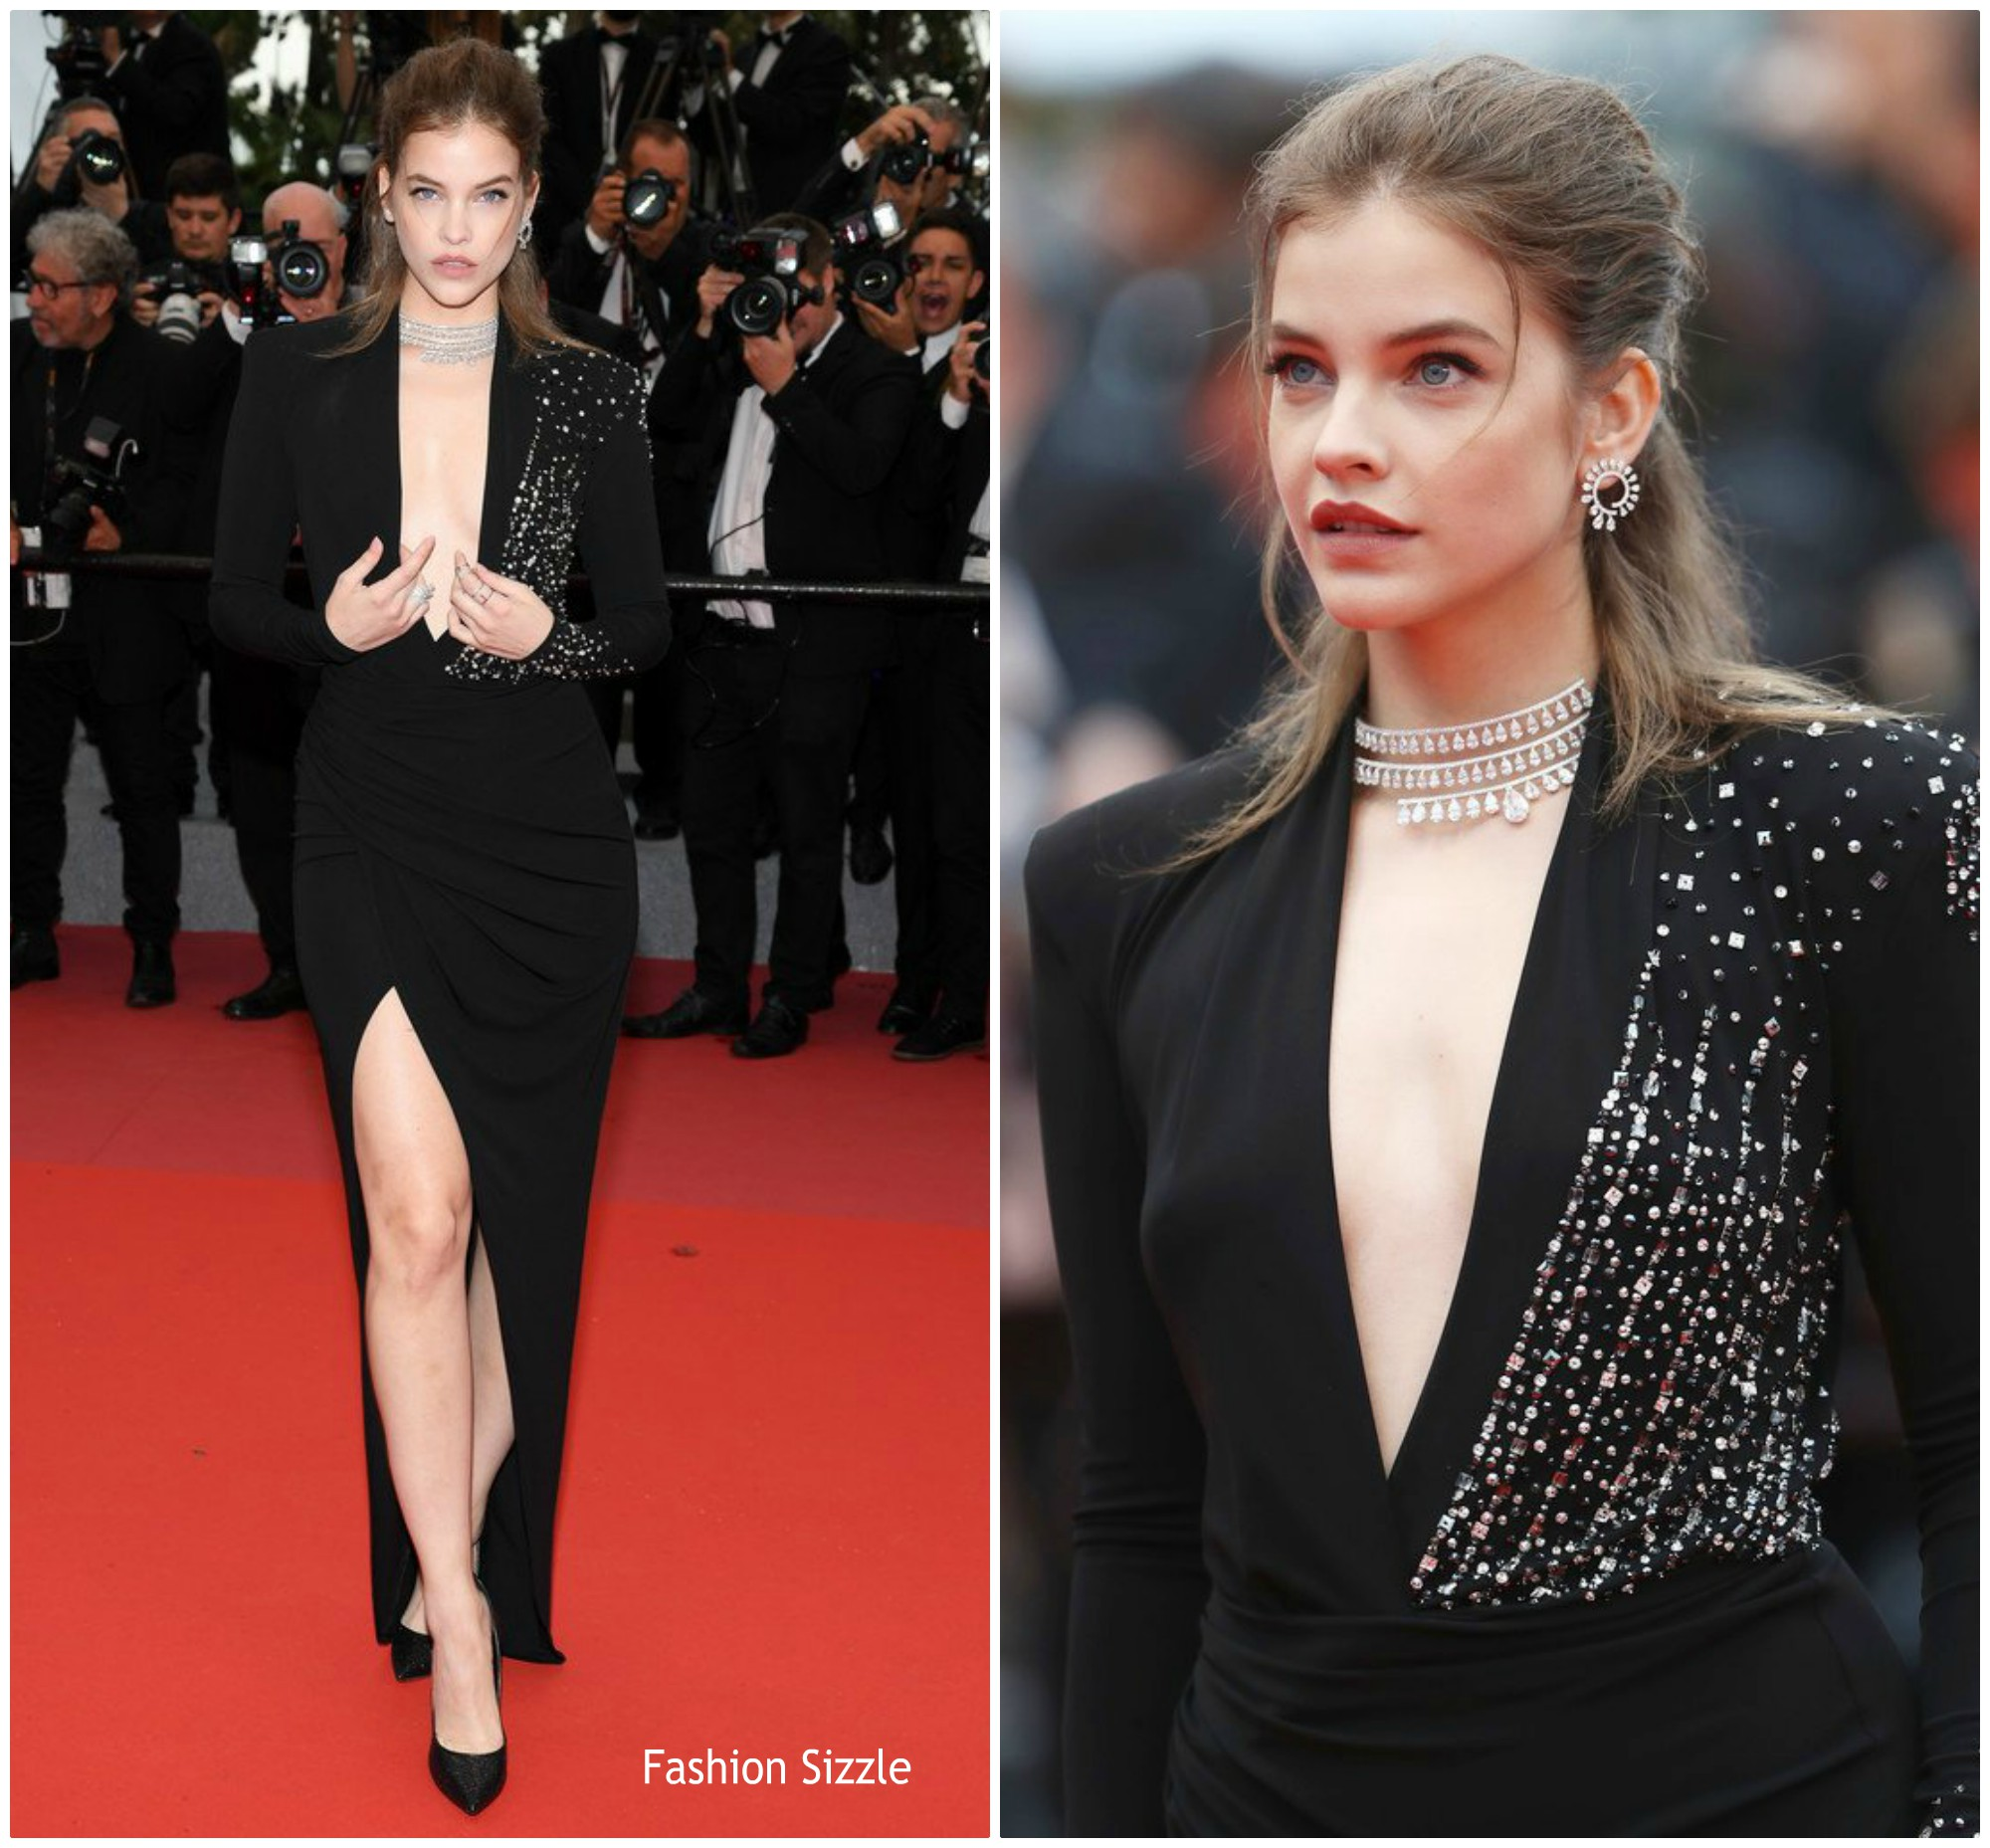 barbara-palvin-in-alberta-ferretti-in-burning-cannes-film-festival-premiere